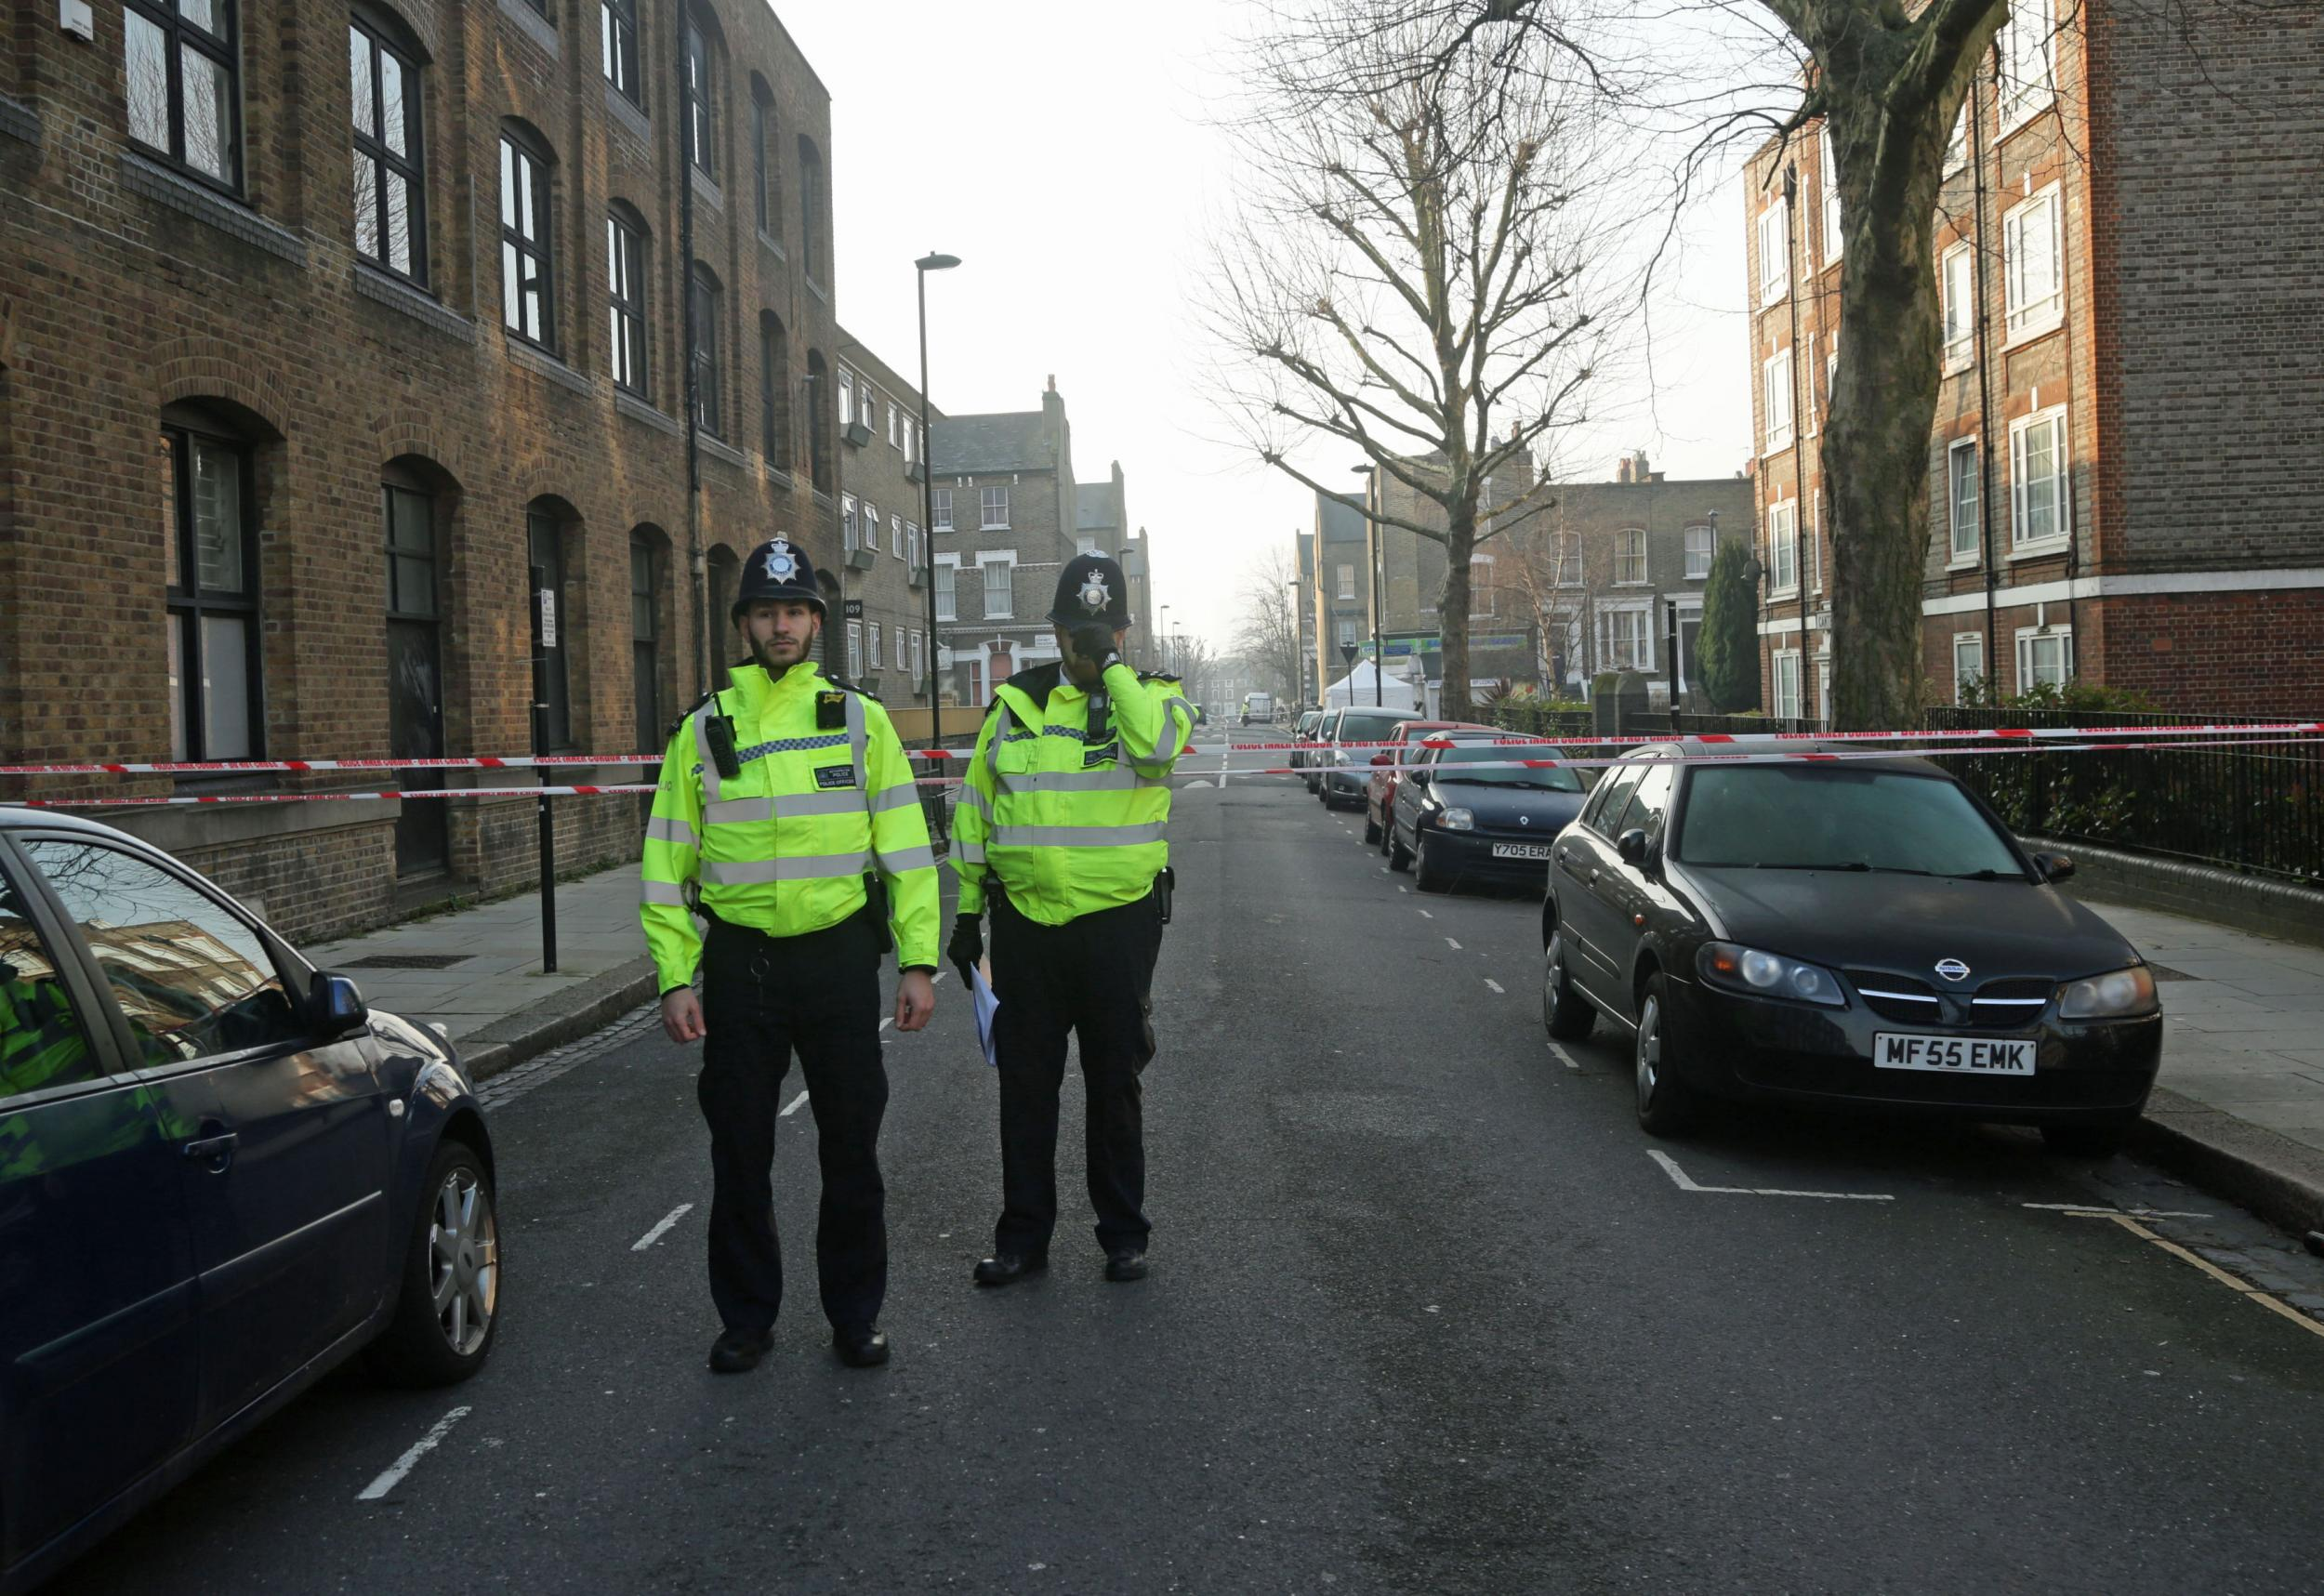 Camden murders two young men stabbed to death in london for The camden